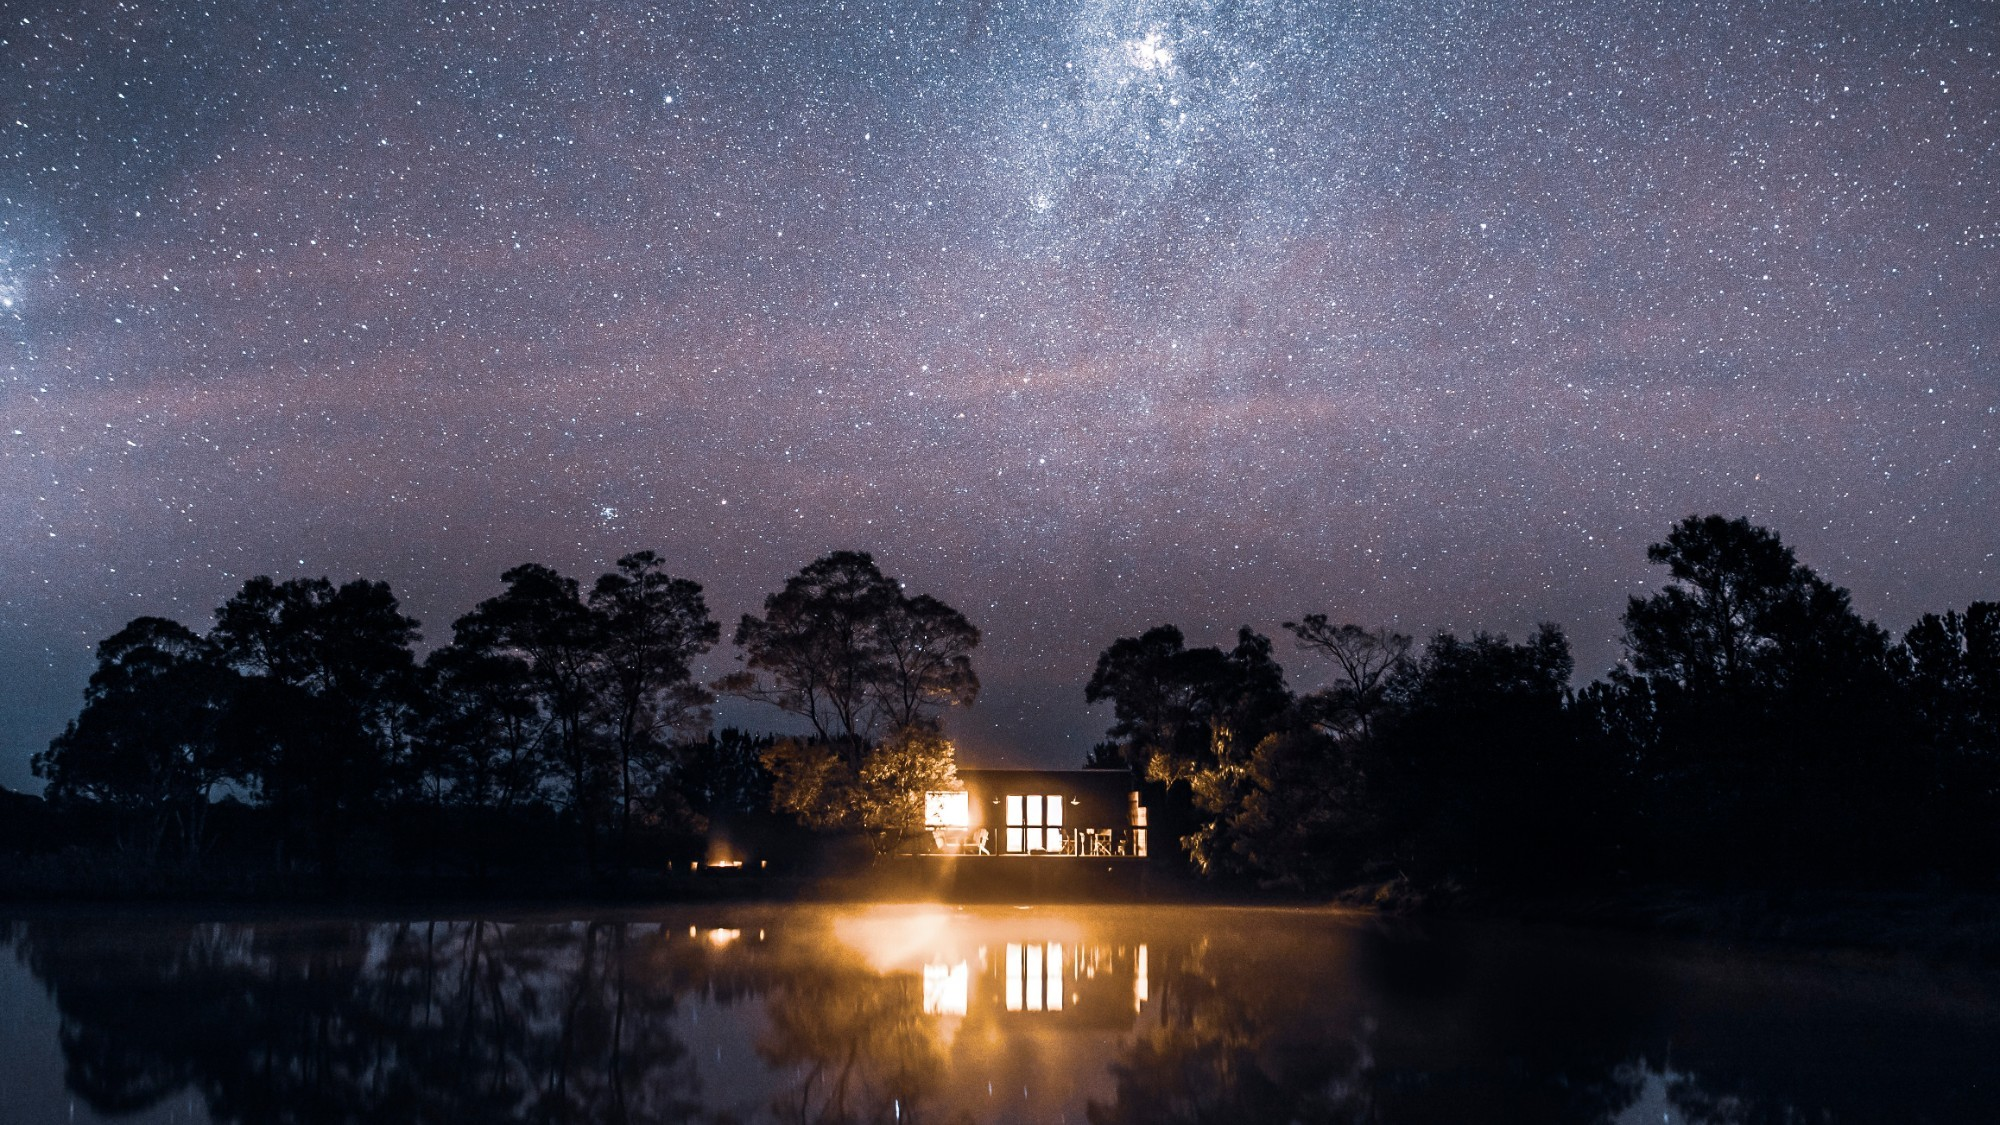 A tiny cabin is illuminated against a night sky.